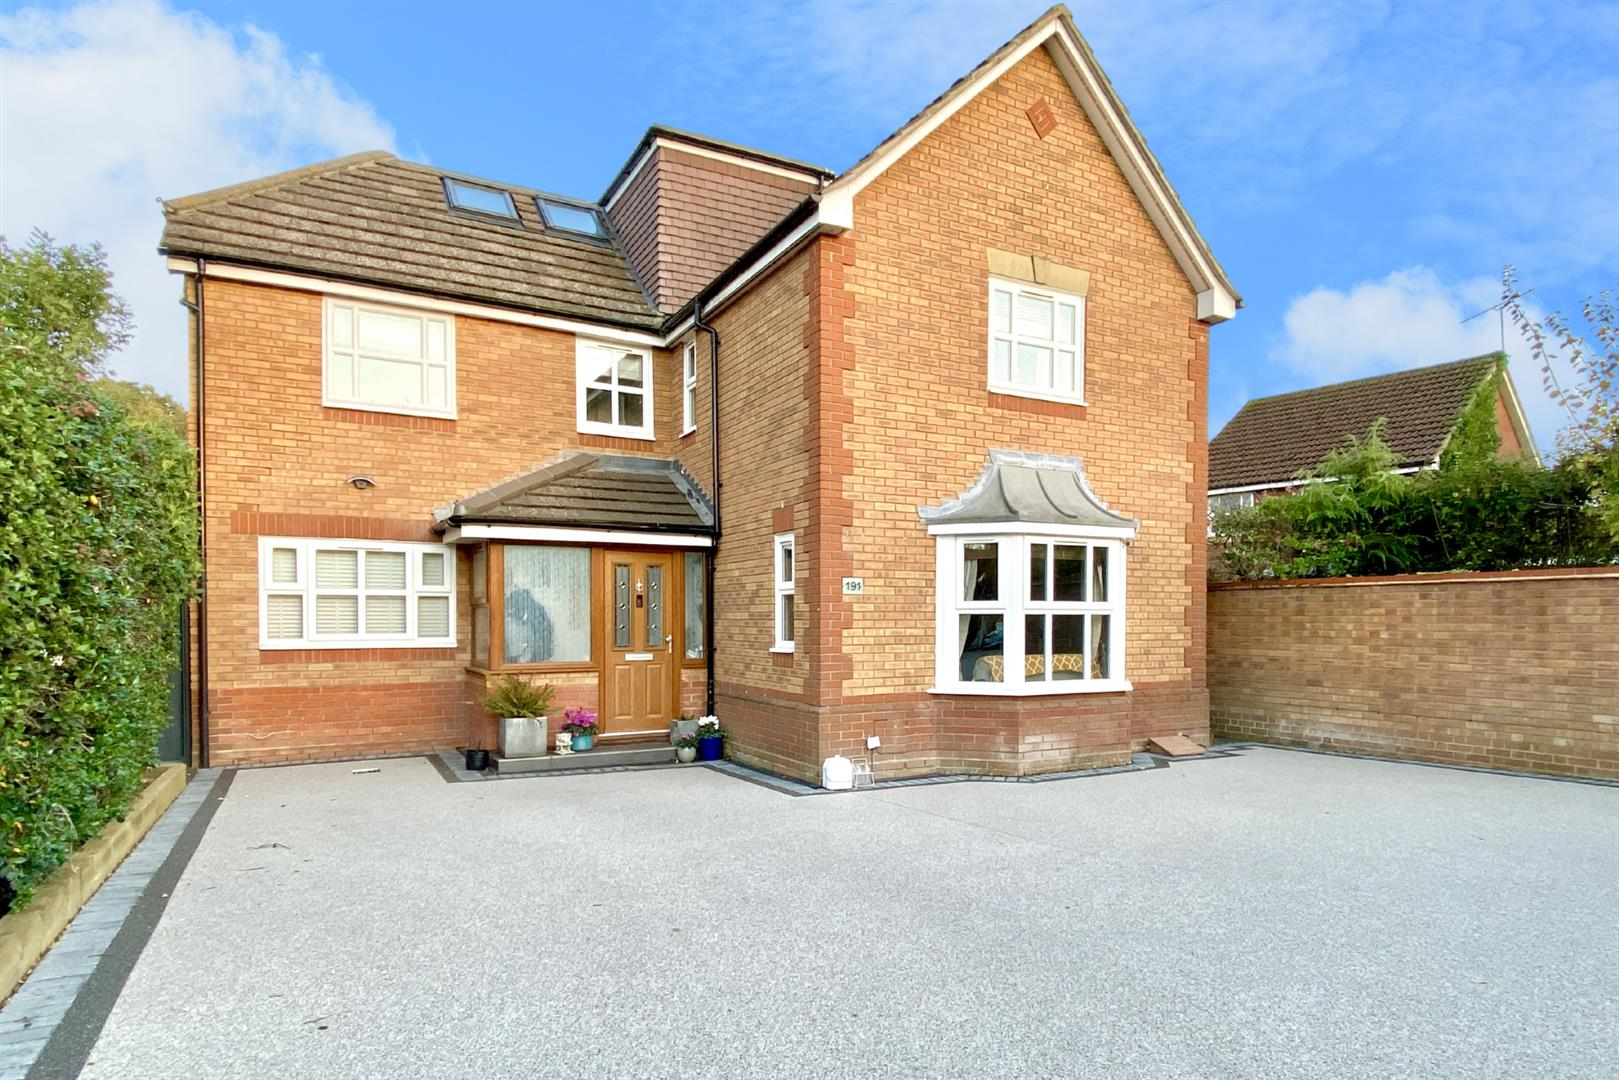 5 bed detached for sale in Woodley 18